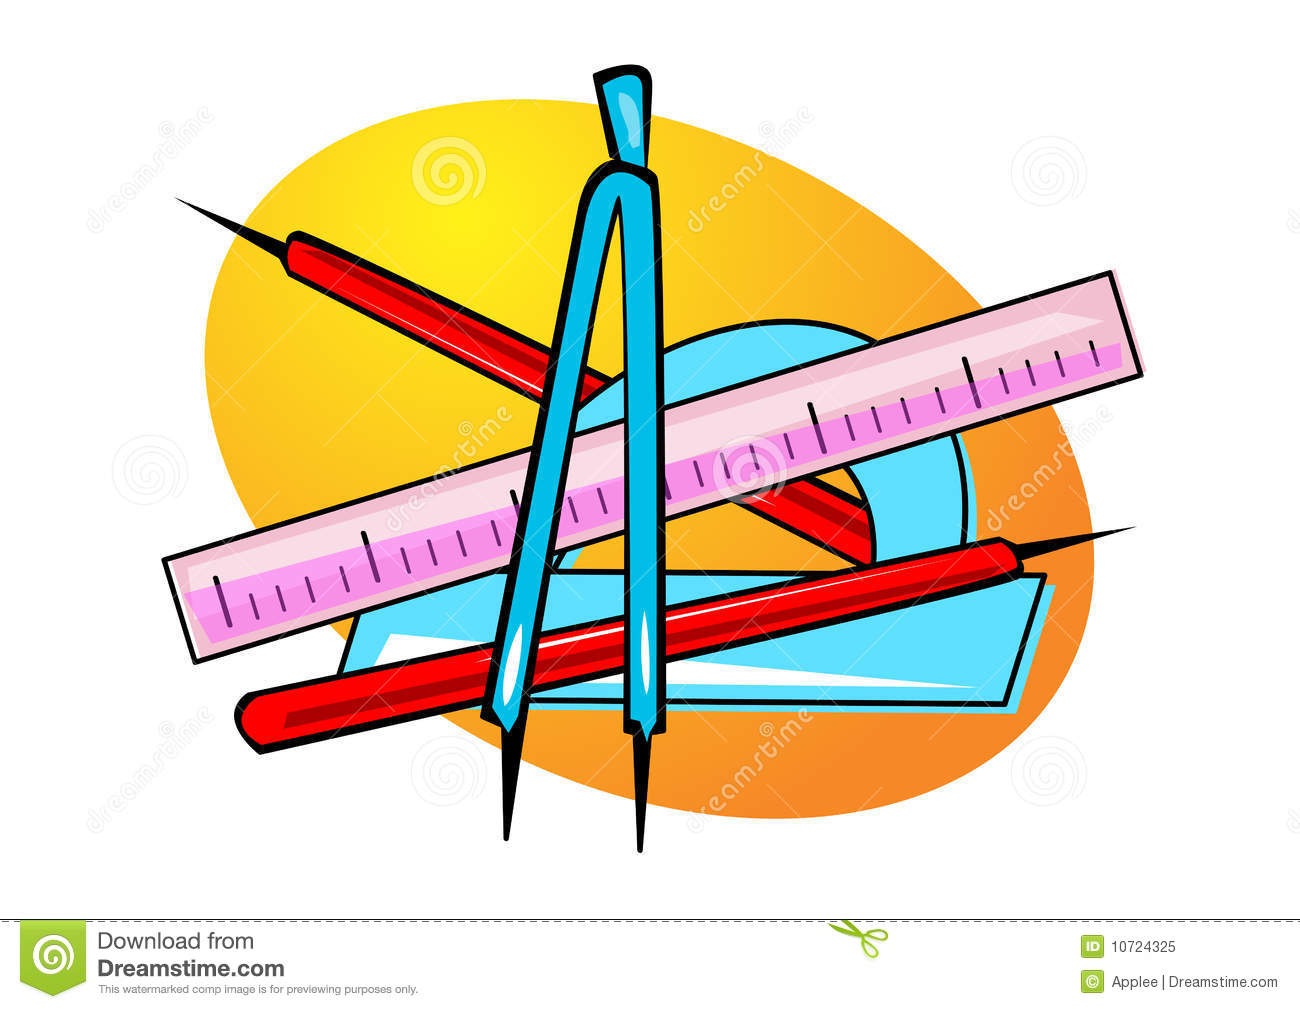 Geometry Clipart Trigonometry - Geometry Clipart